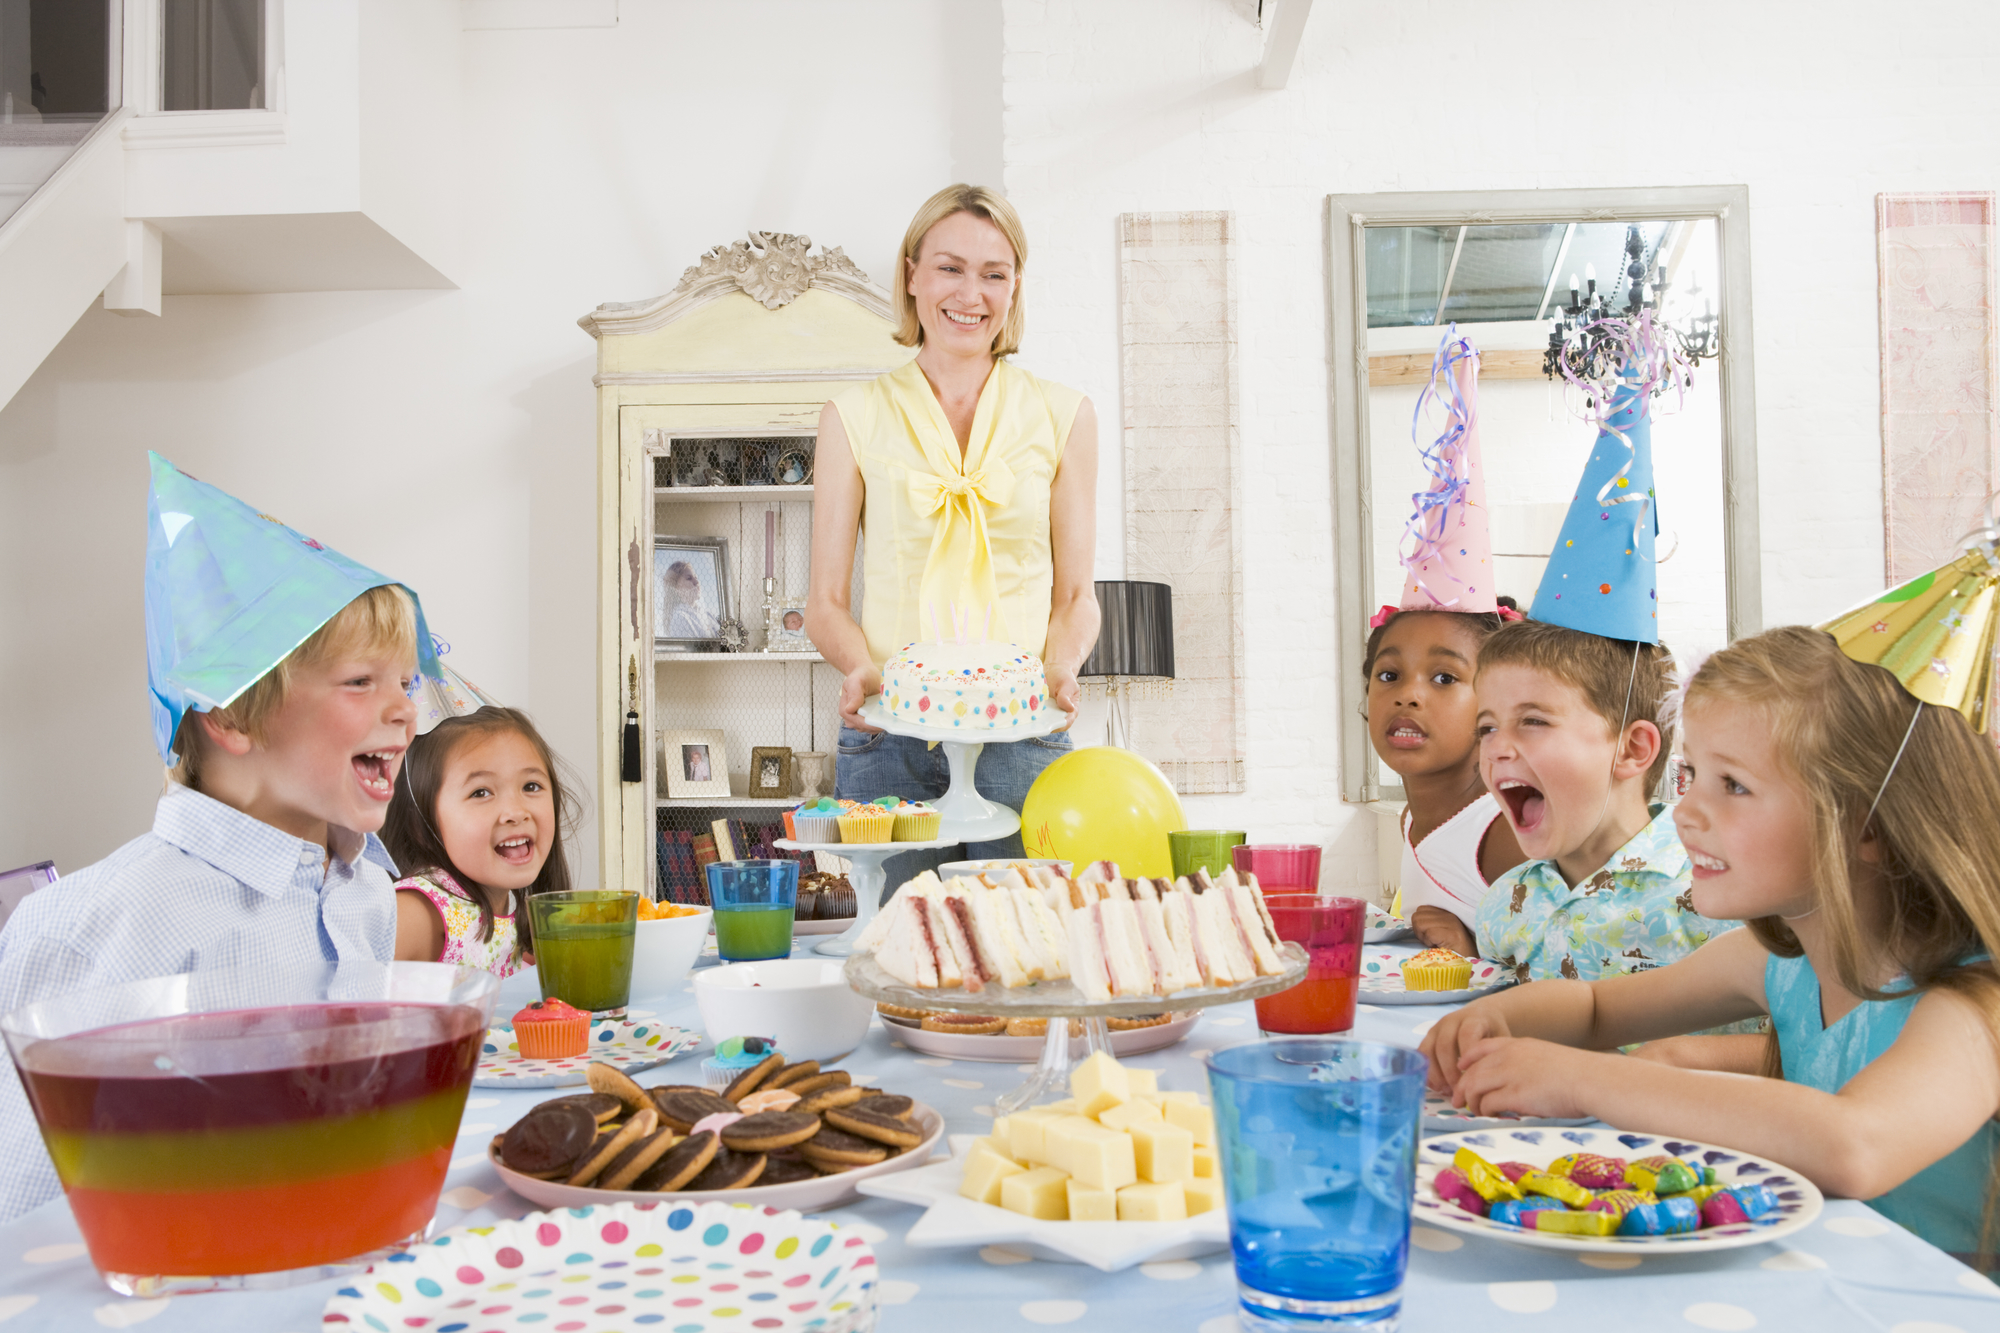 Mom holding kid friendly birthday cake with kids around table celebrating party